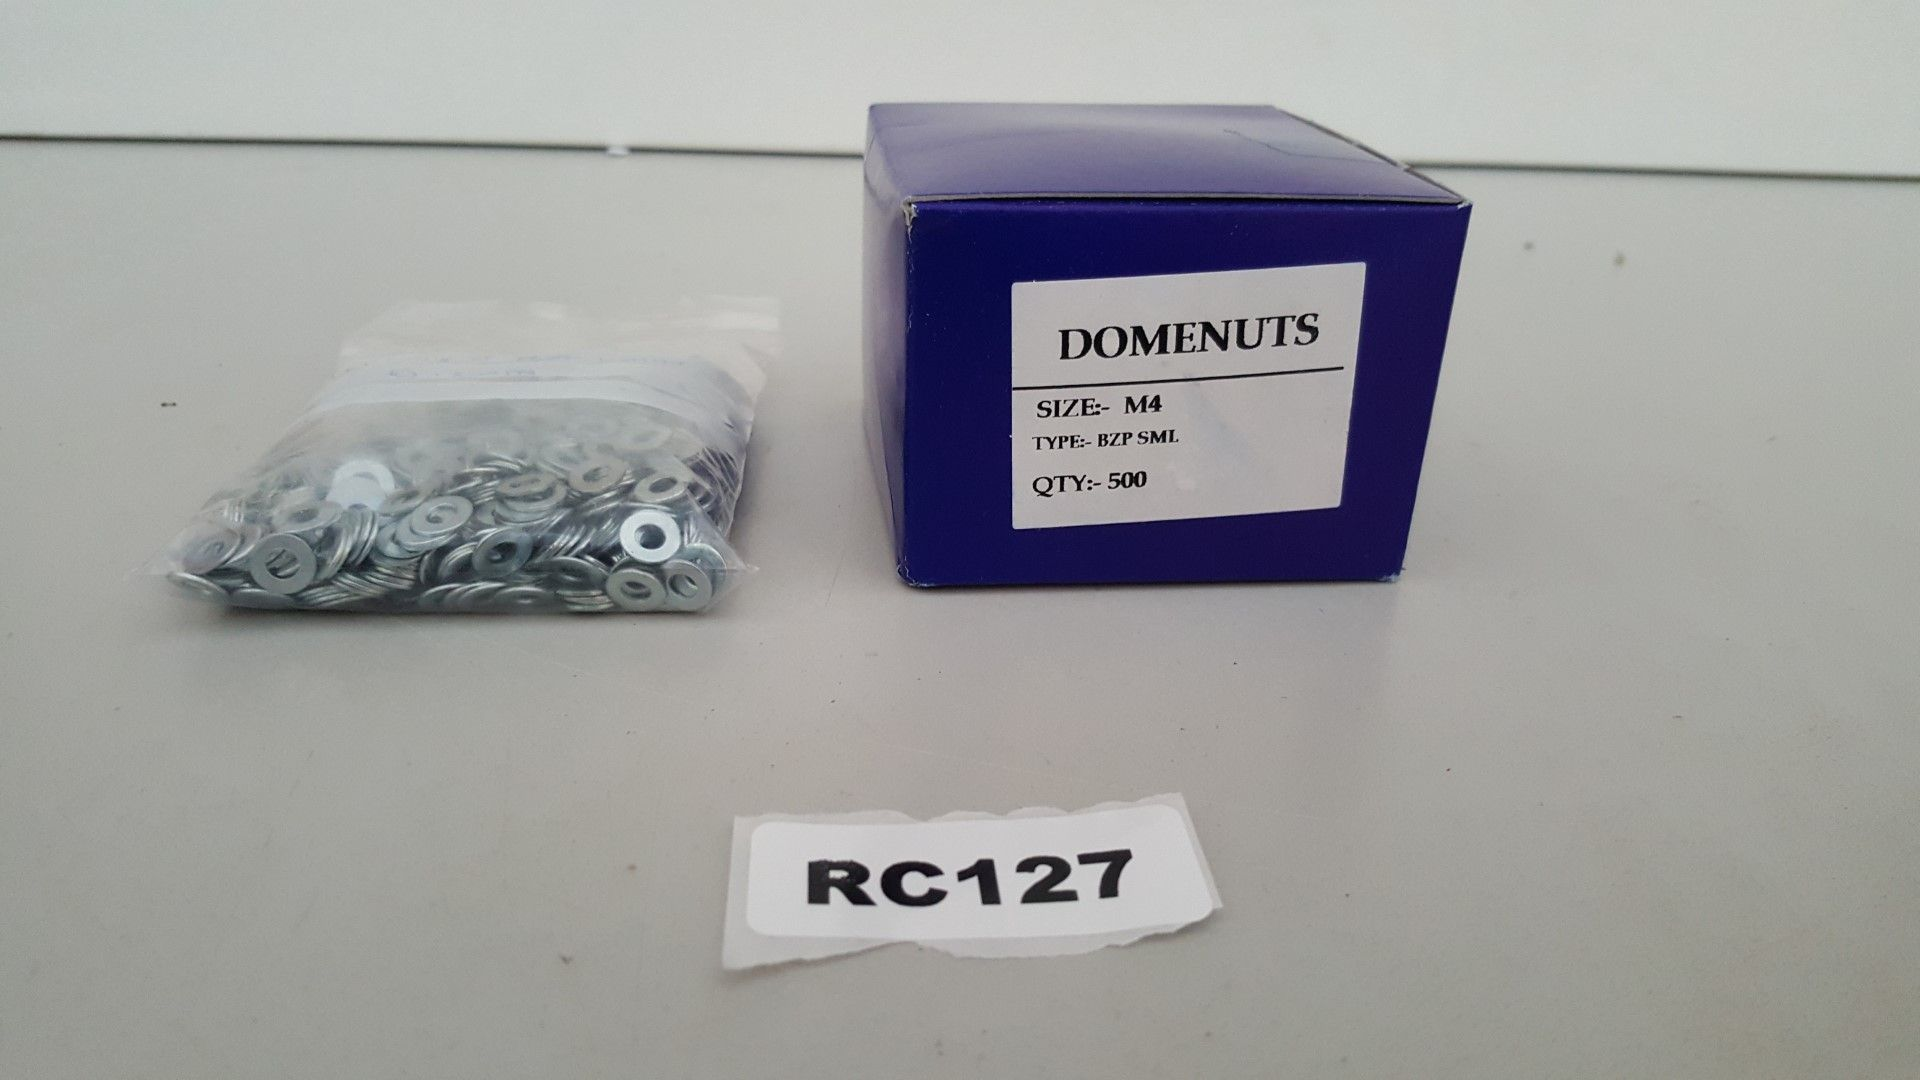 Lot 6804 - 1 x Domenuts M4 Approximately 500 And FLAT WASHERS M4 Approximately 500 - Ref RC127 - CL011 - Locat